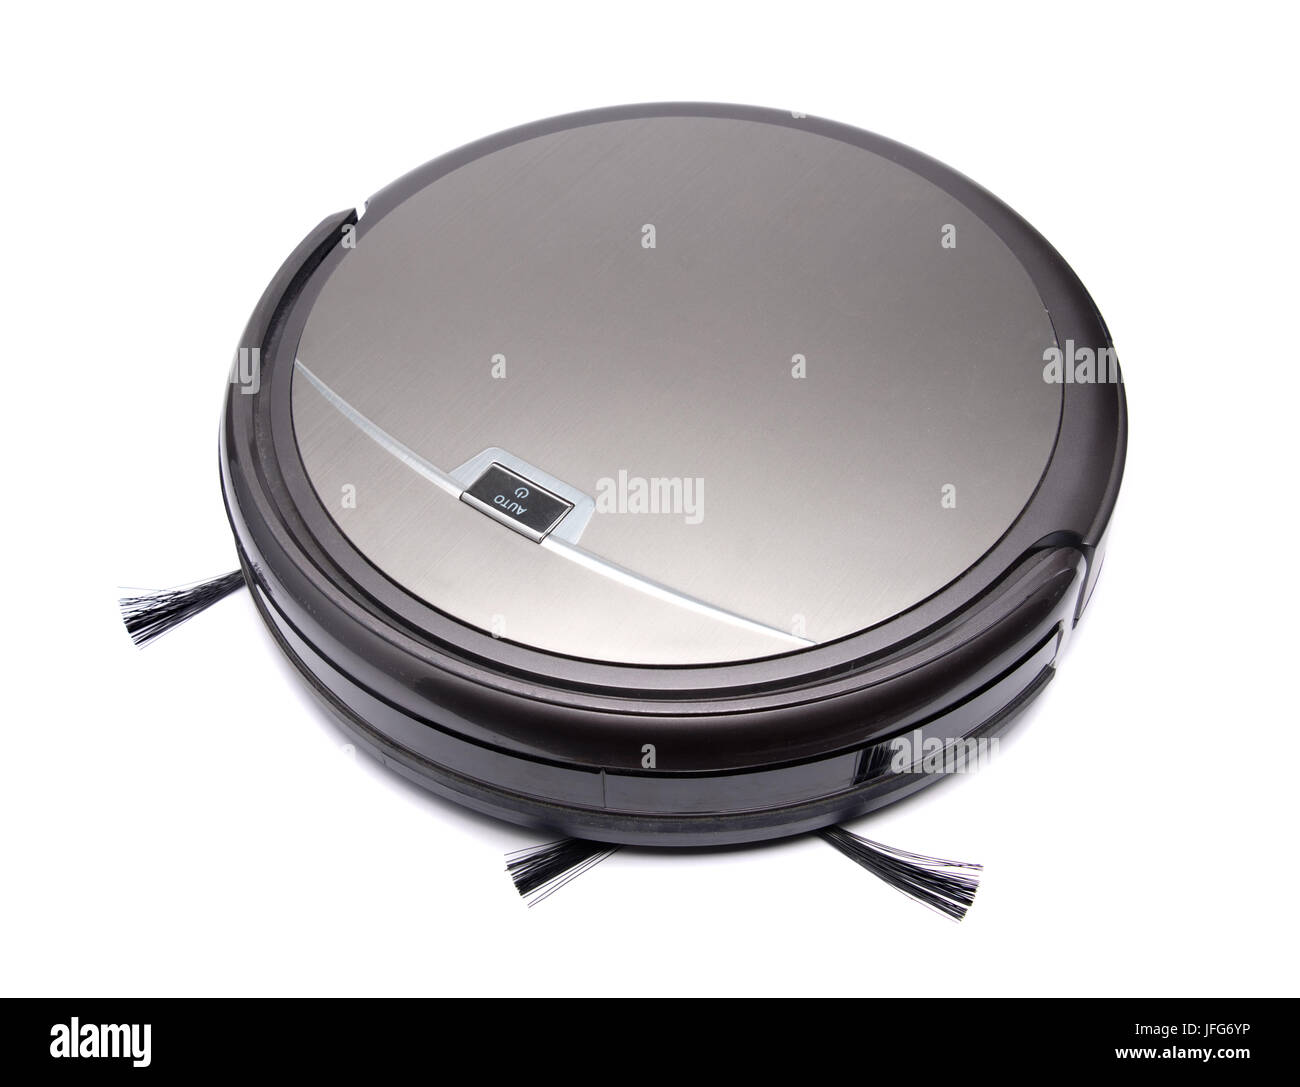 Robot vacuum cleaner cut out isolated on white background - Stock Image